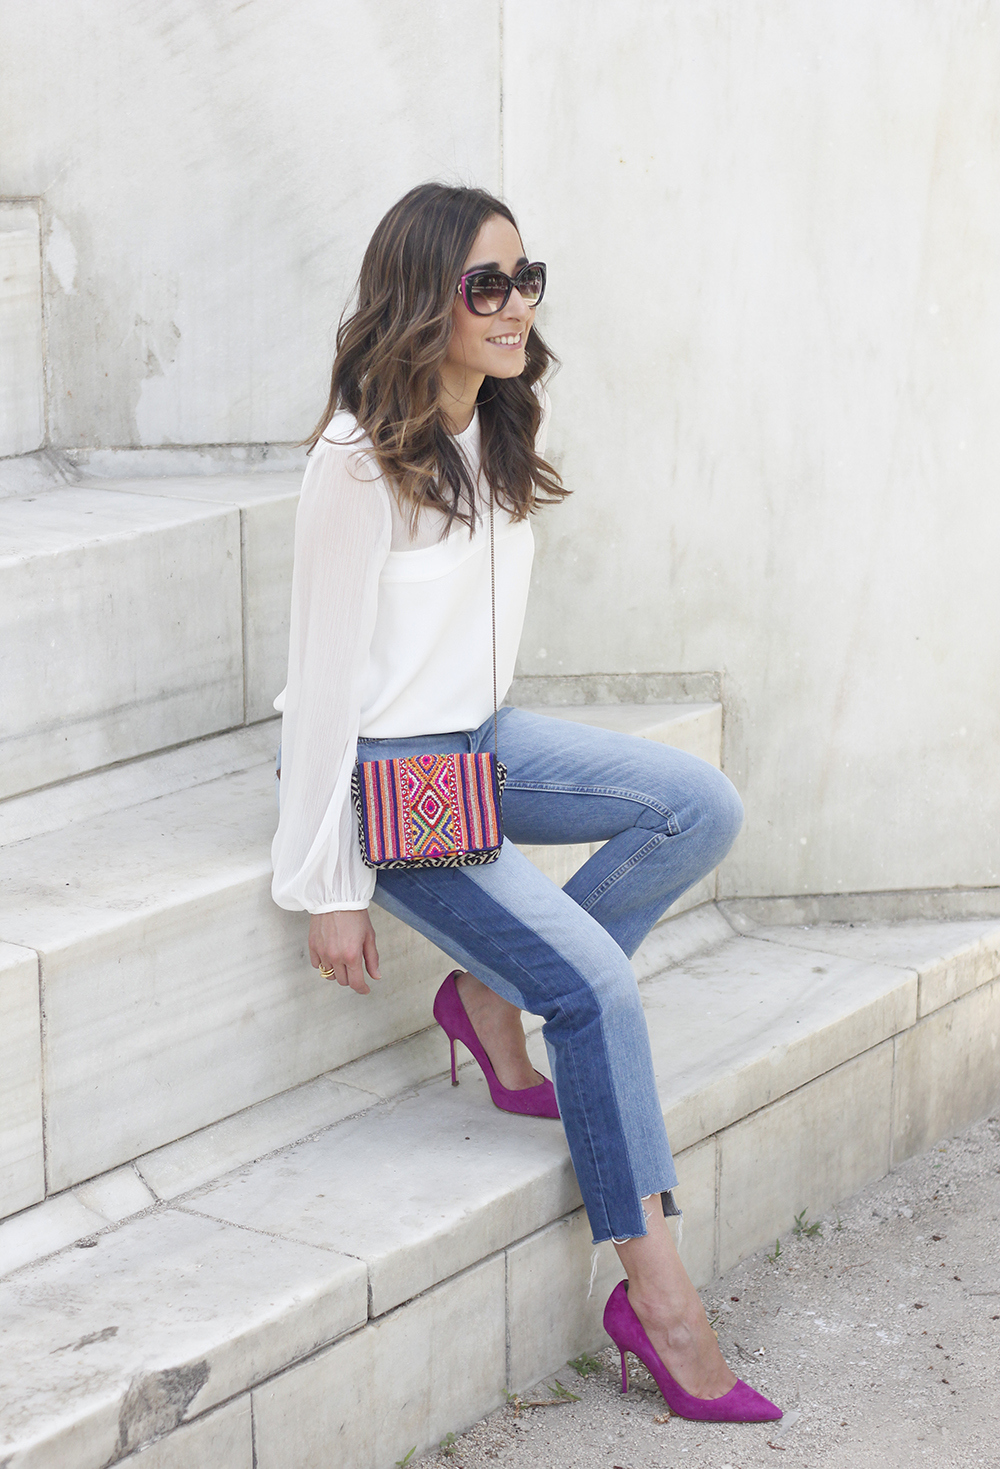 Boyfriend Jeans With Asymmetrical Hems white blouse carolina herrera heels daydaday bag outfit style streetstyle05